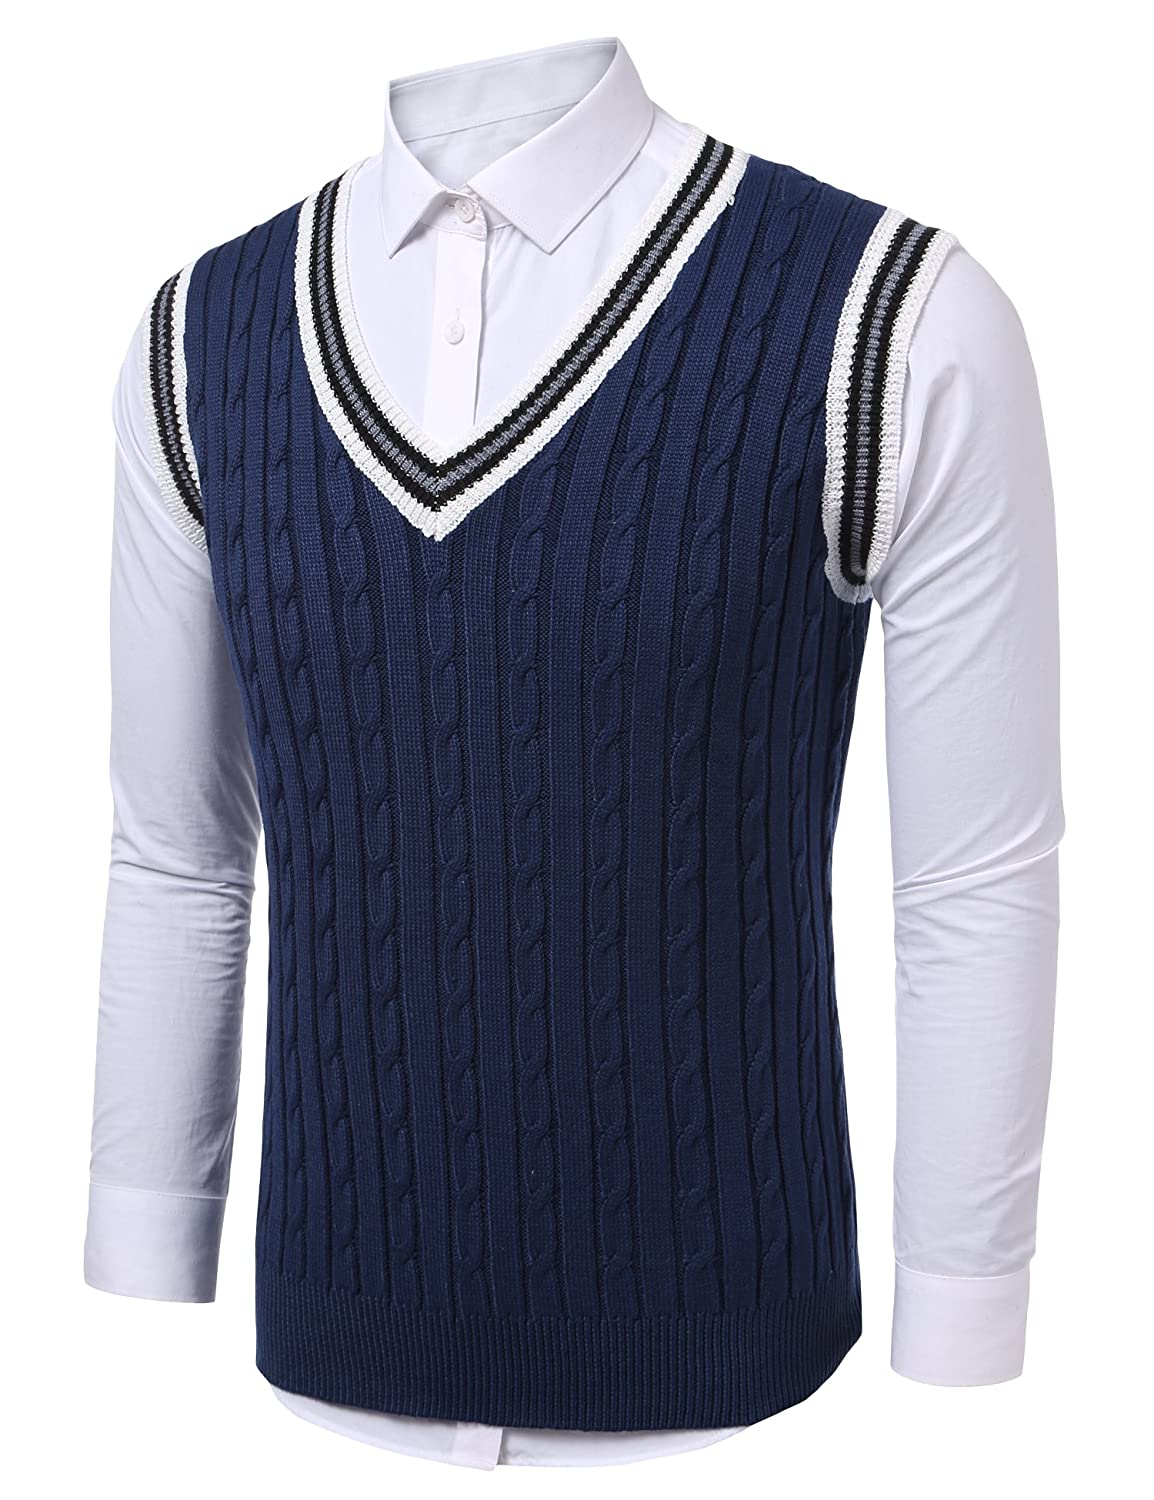 1920s Tennis Clothes | Womens and Men's Outfits Coofandy Mens Casual Knitted Sweater Slim Fit Pullover Cable Sweater Links-Vest $27.99 AT vintagedancer.com